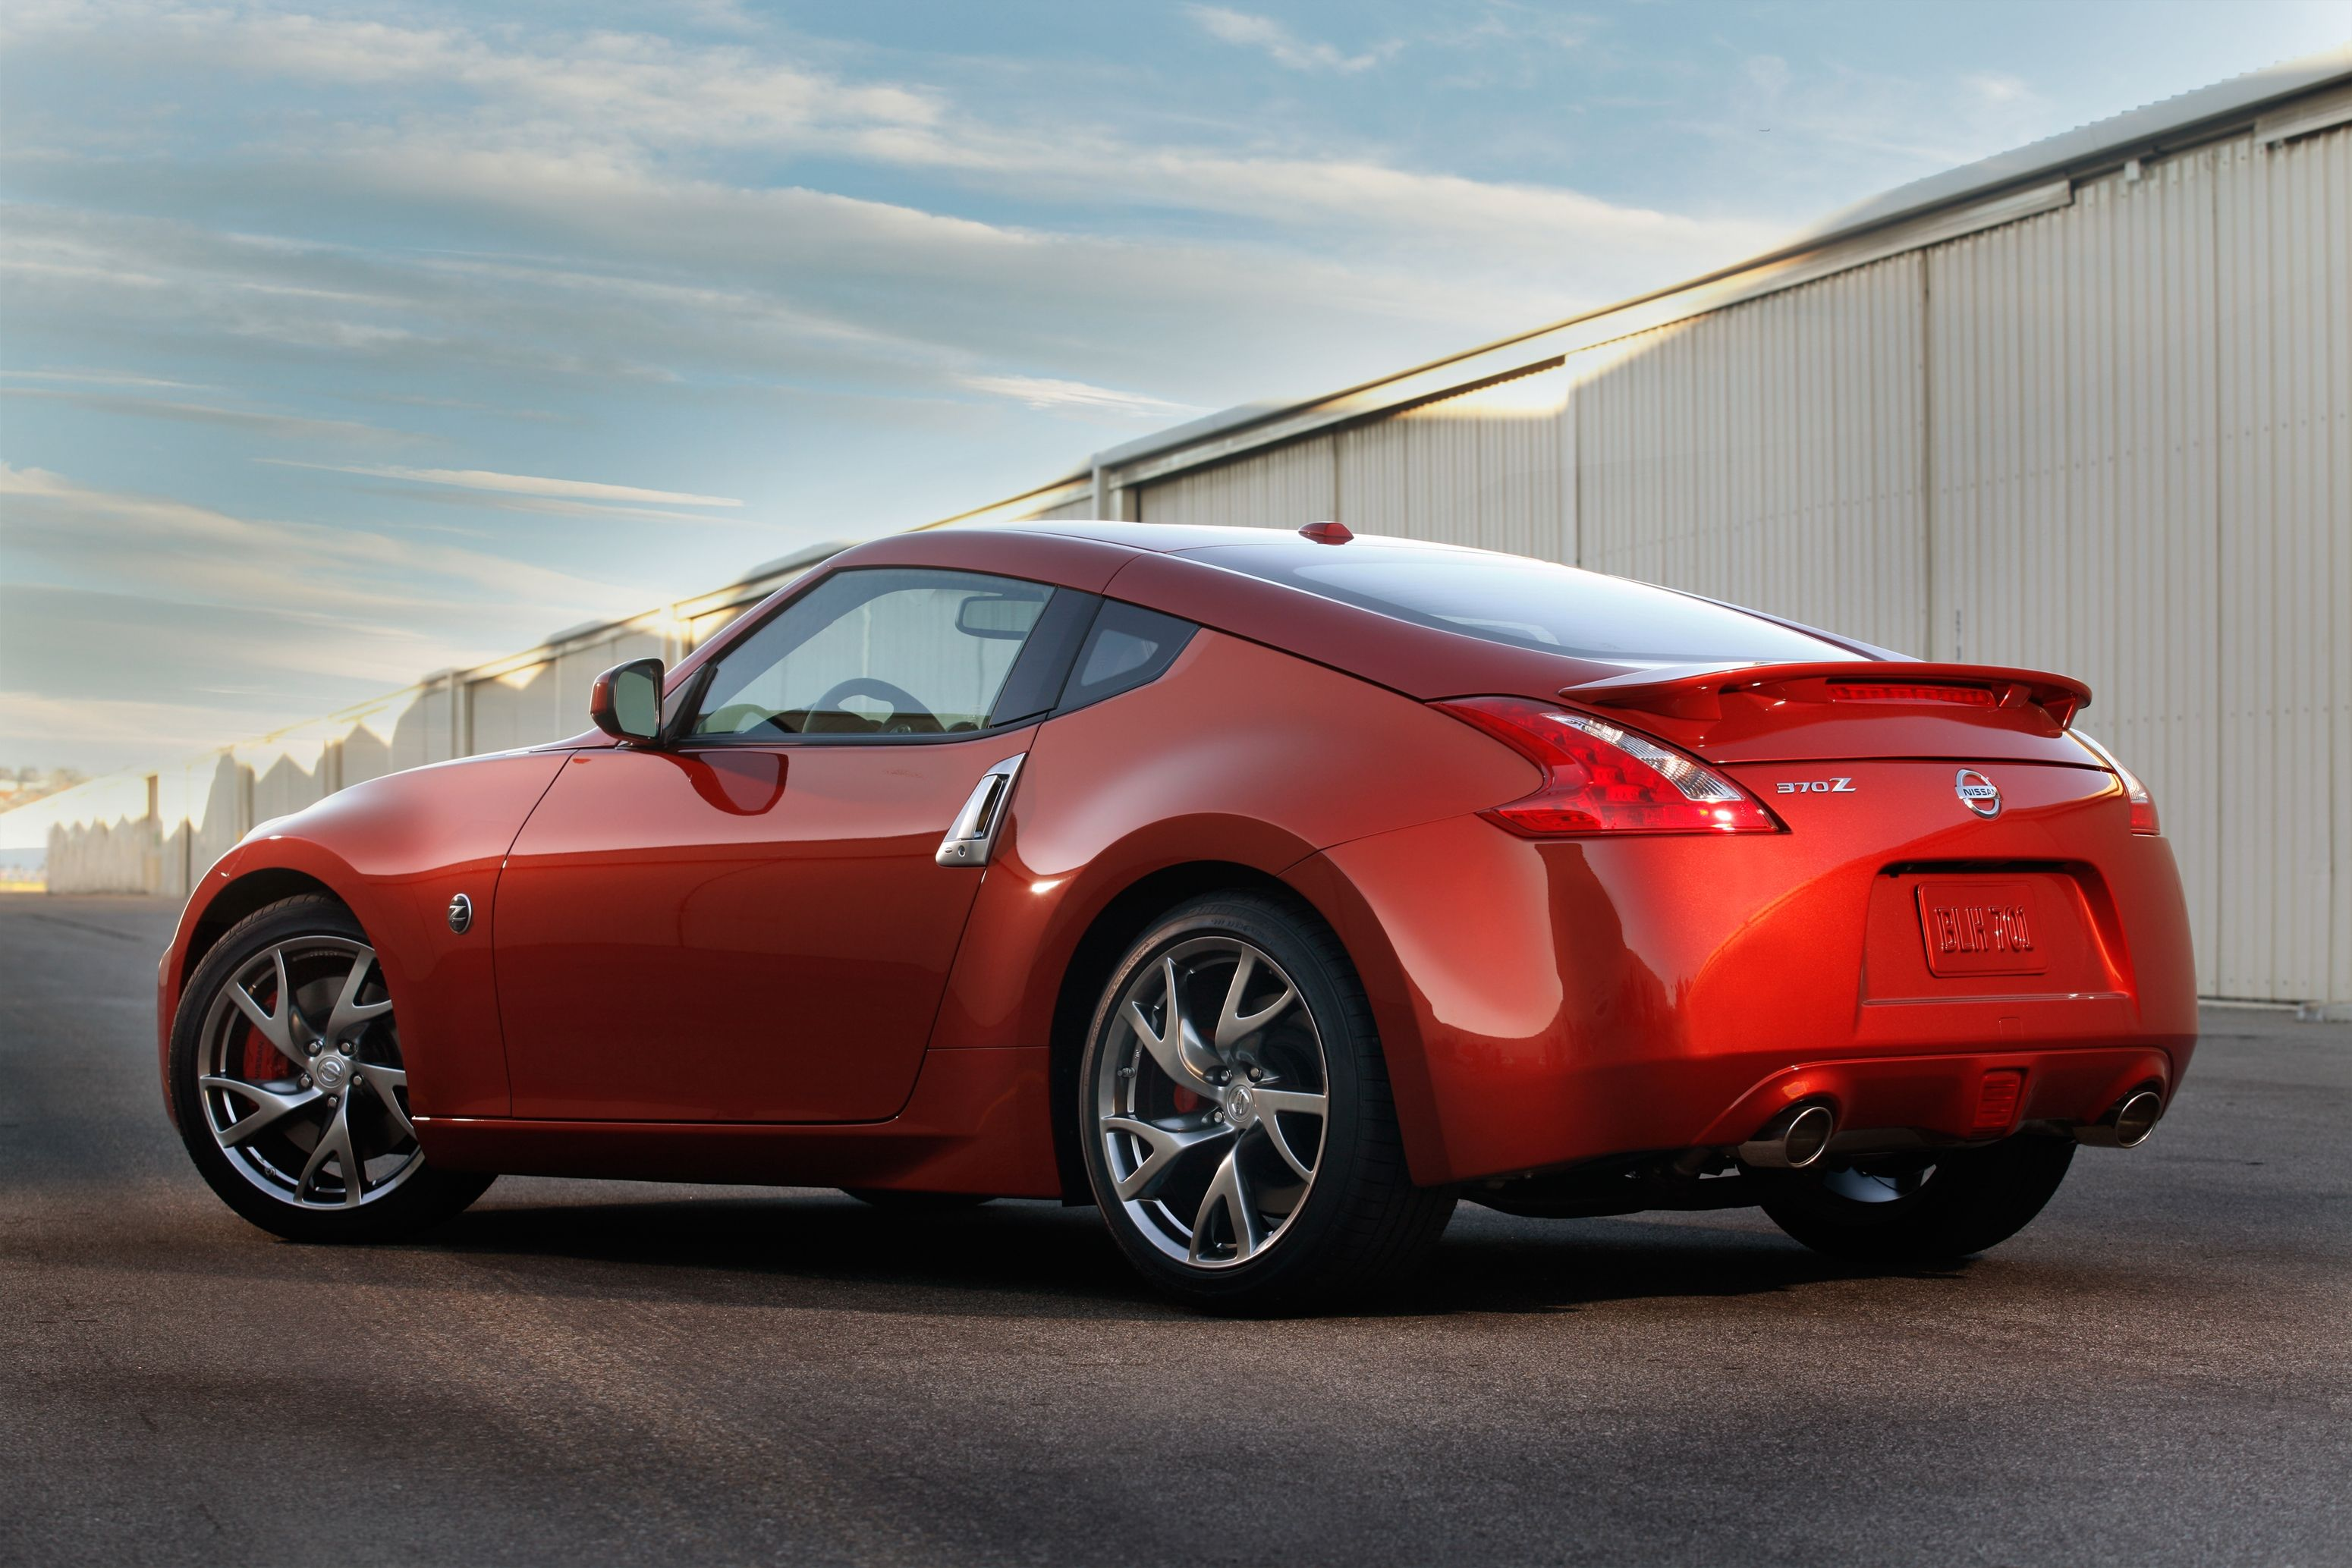 Nissan 370z coupe this is how i want to roll i use to have